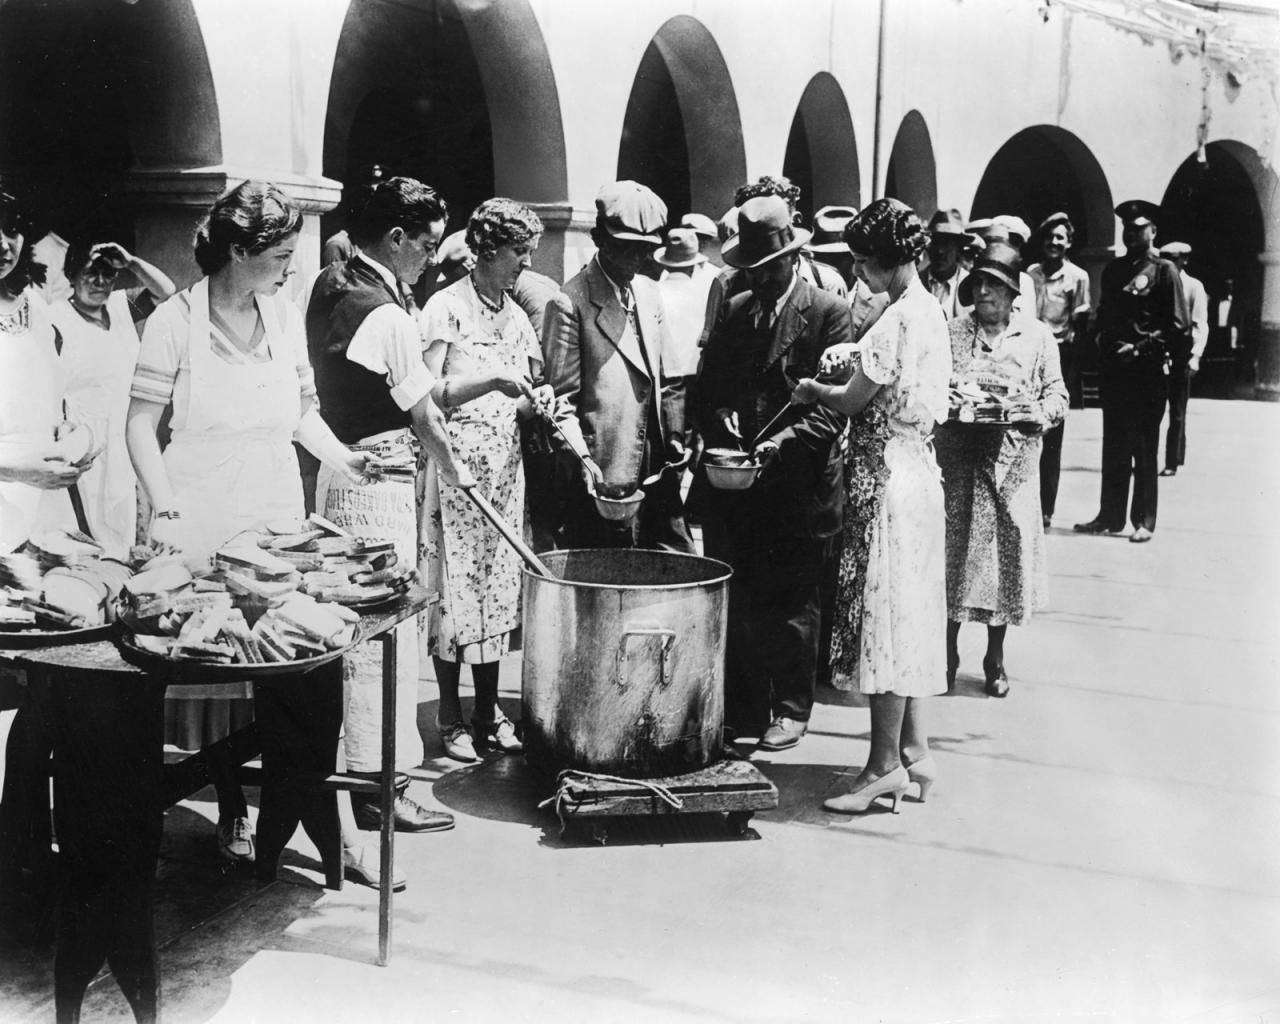 Soup and bread line the great depression pinterest for Cuisine 1930